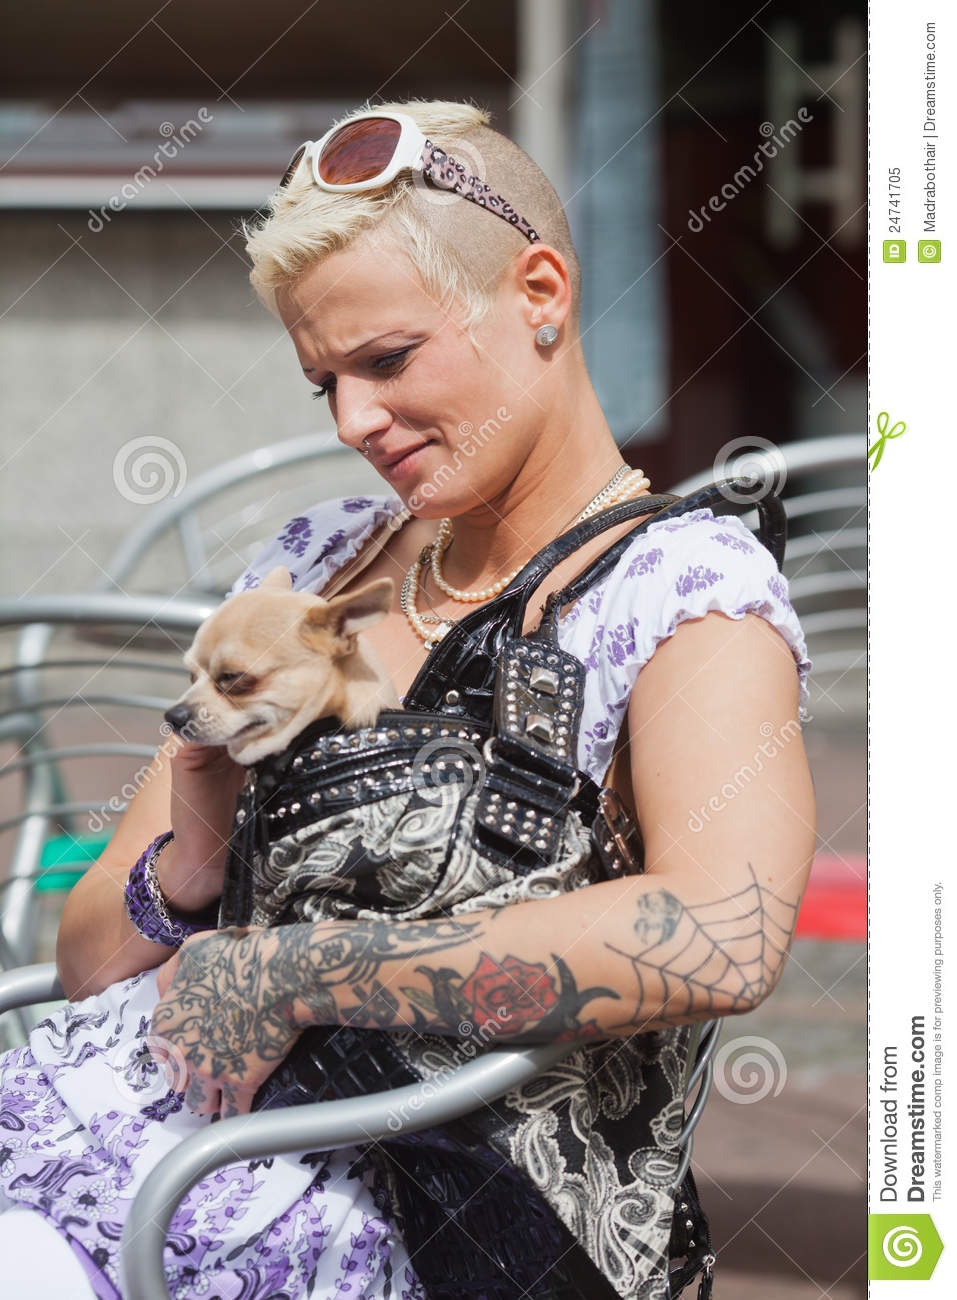 Tattooed Woman With A Dog In The Handbag Royalty Free